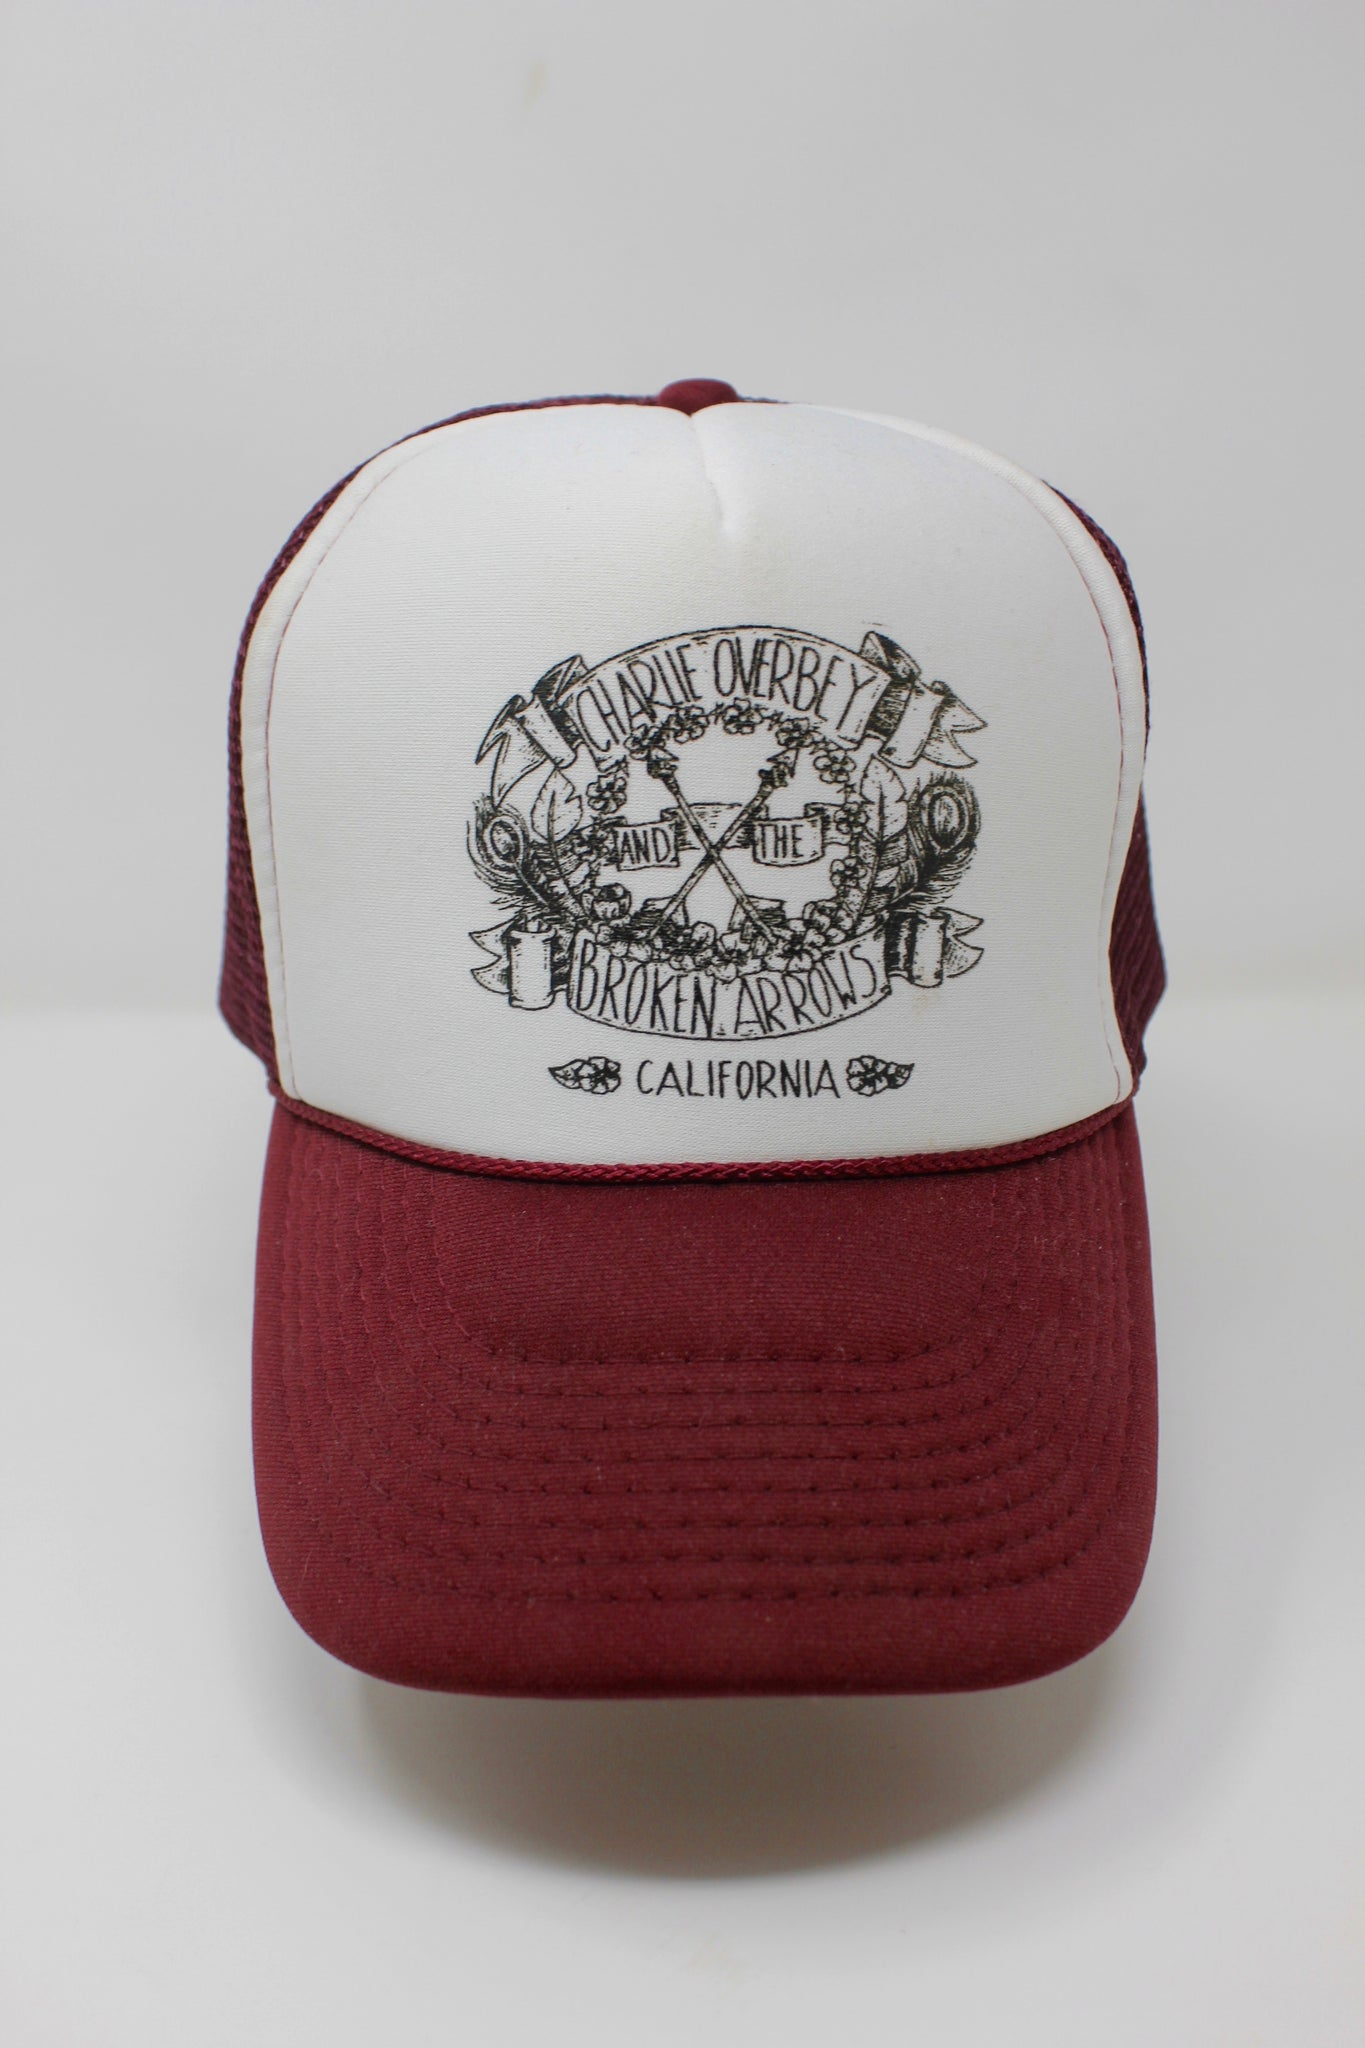 Charlie Overbey & The Broken Arrows Trucker Hat